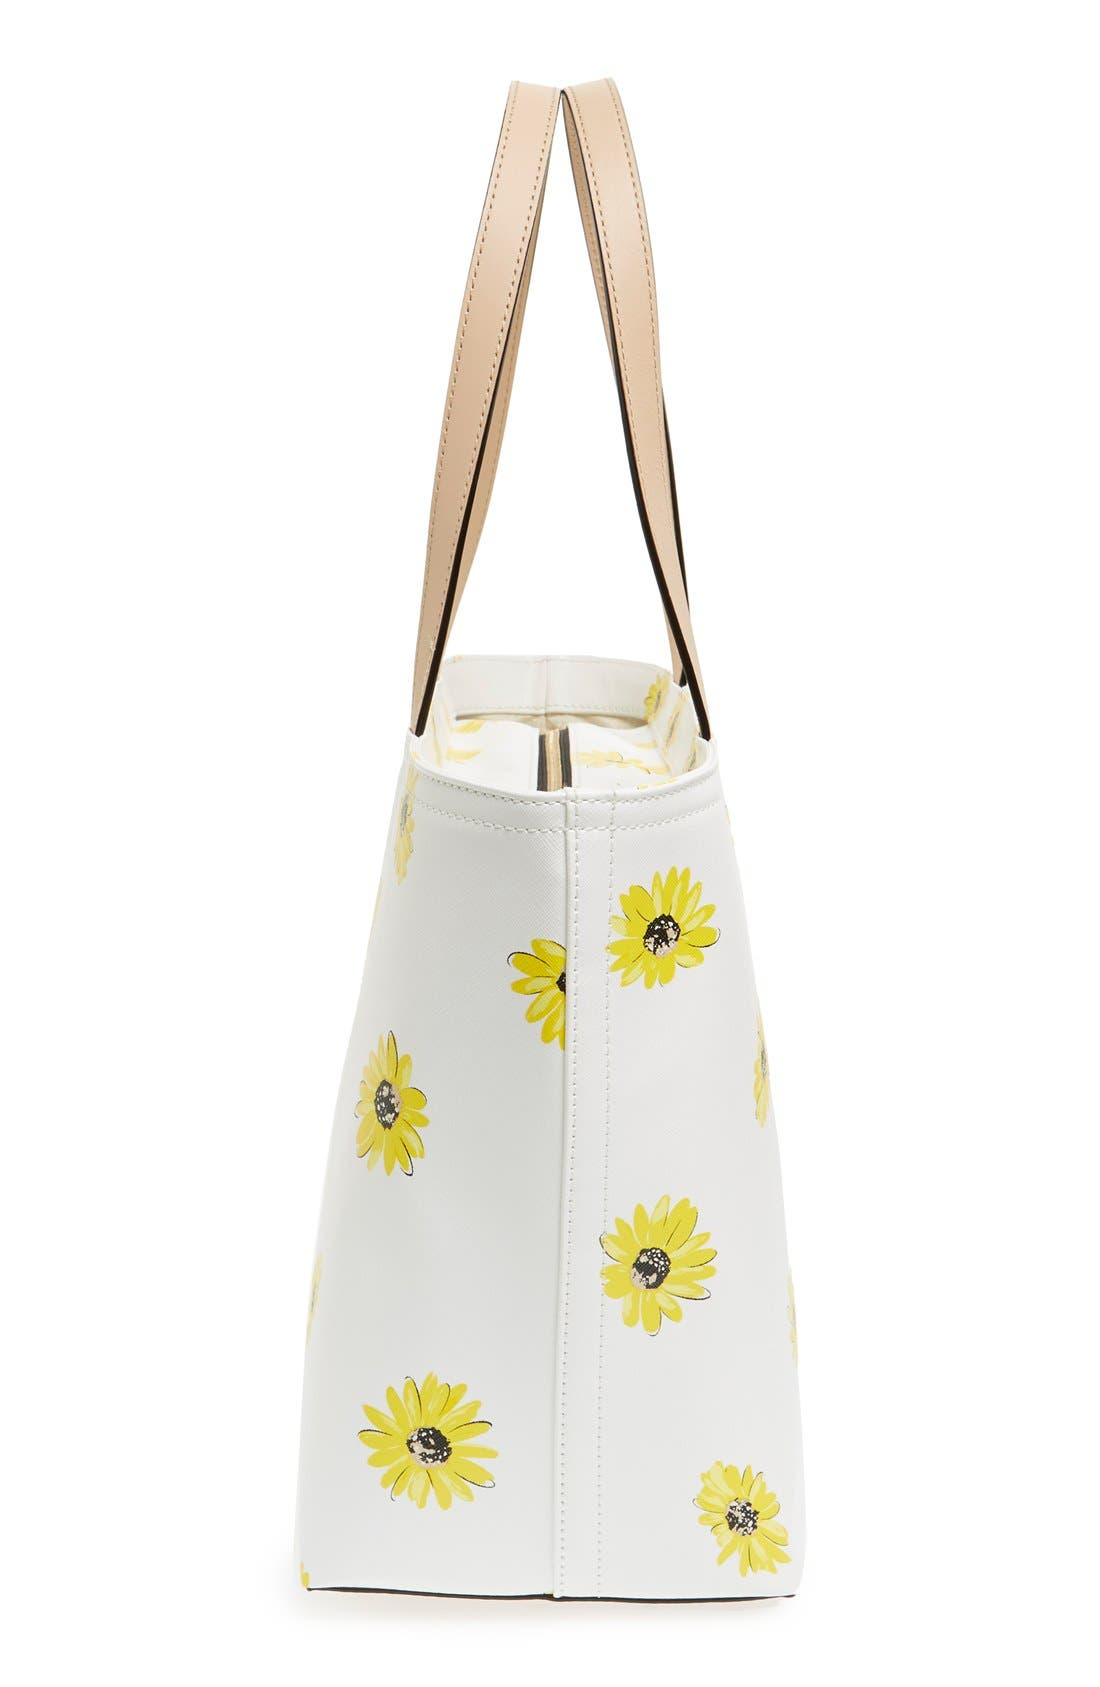 'oops-a-daisy - francis' tote,                             Alternate thumbnail 5, color,                             250